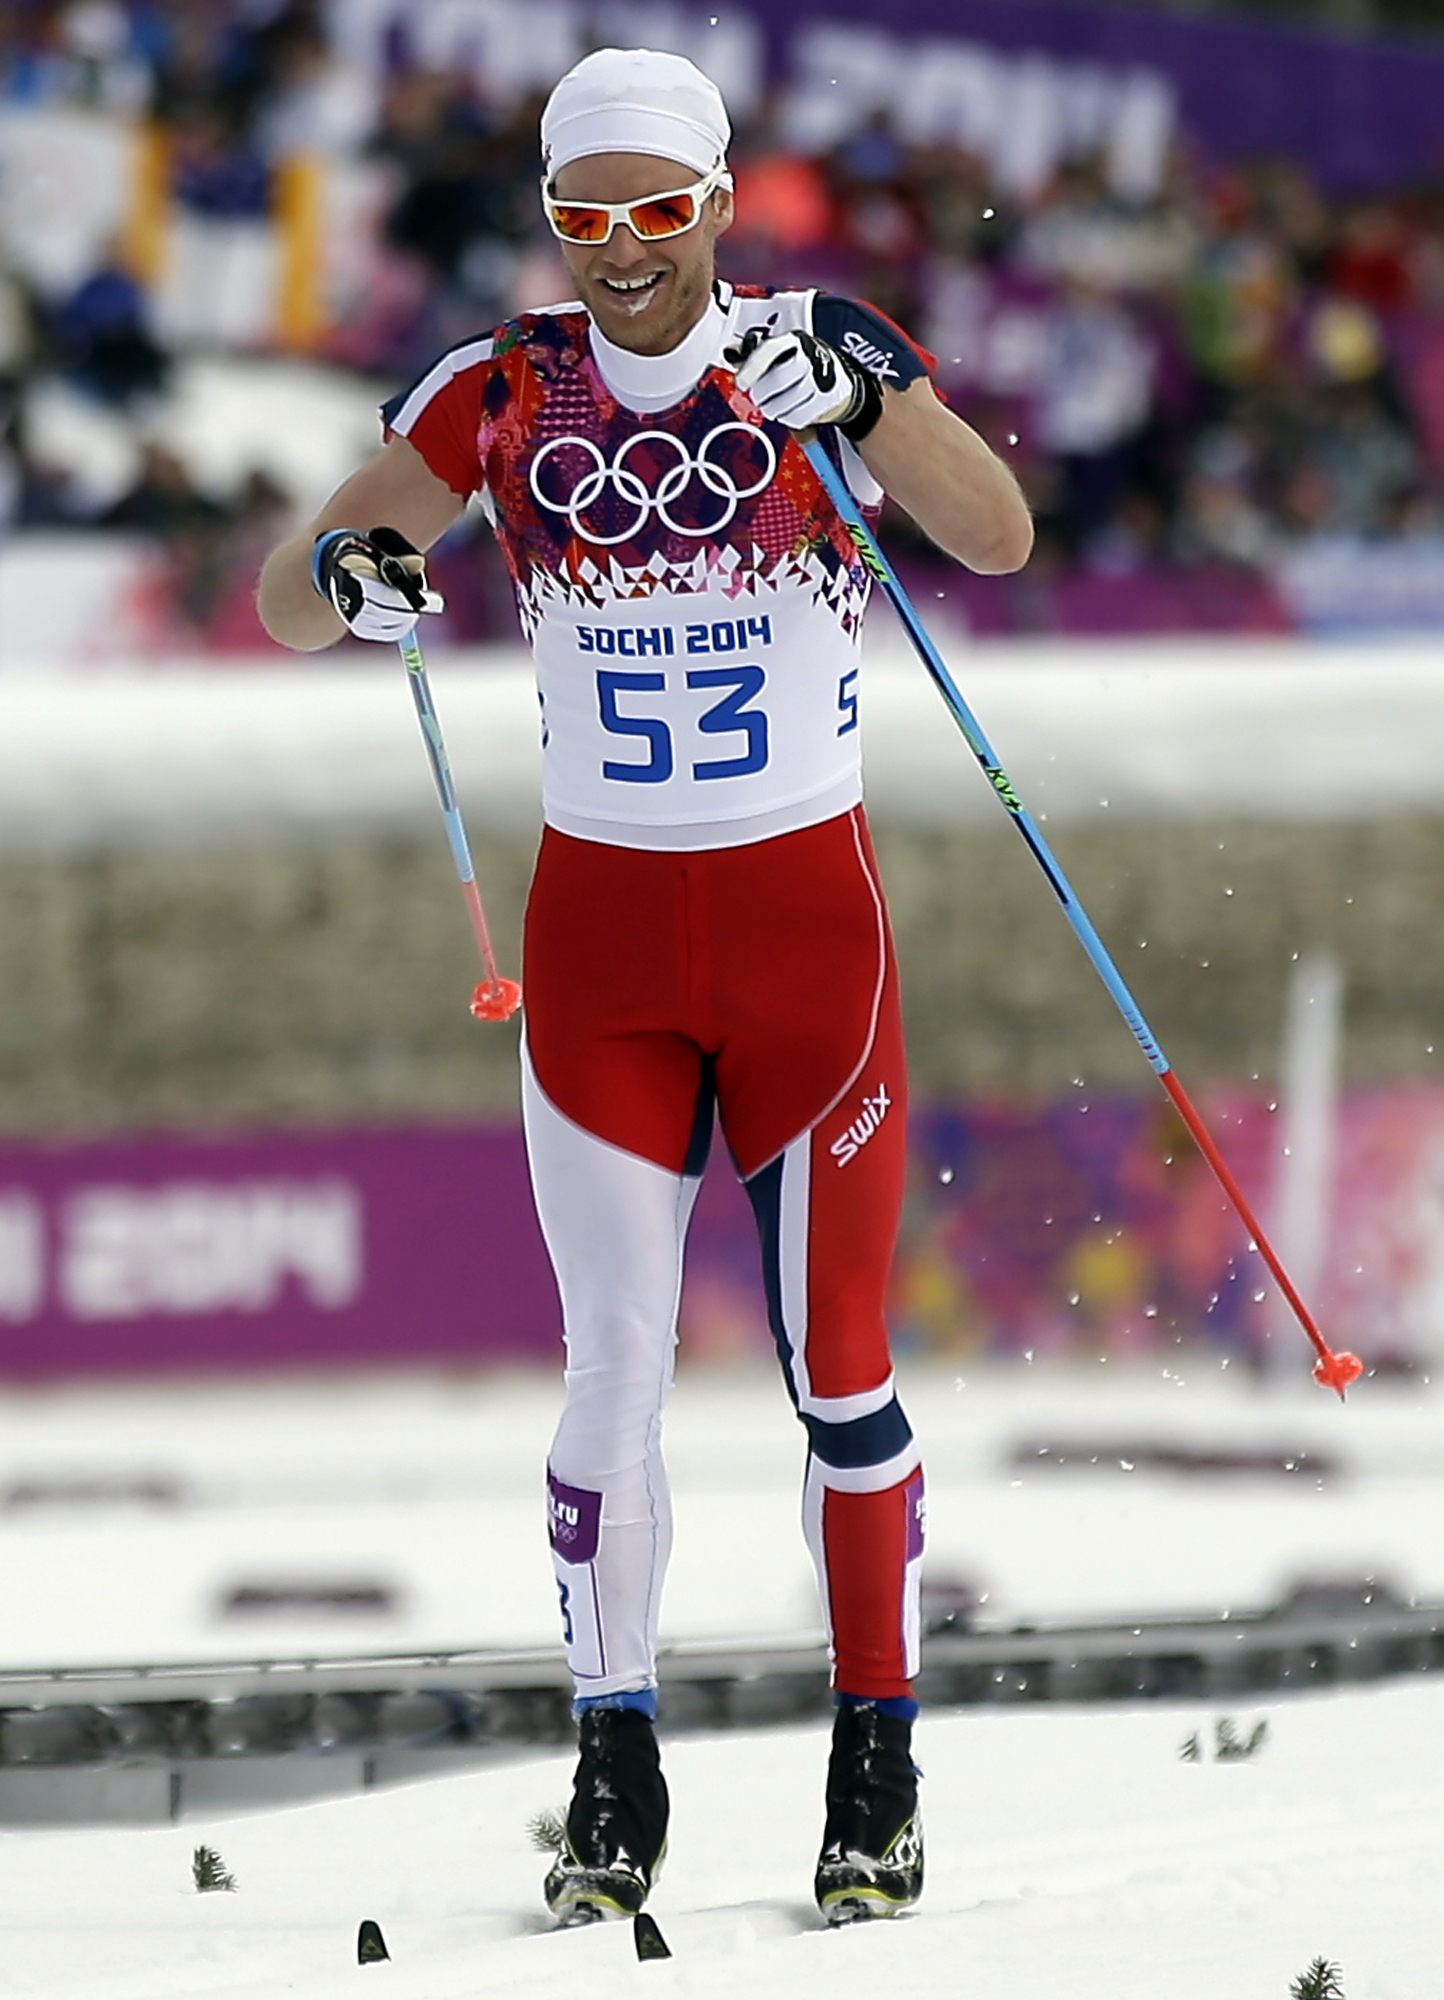 Norway's Martin Johnsrud Sundby competes with his sleeves cut, during the men's 15K classical-style cross-country race at the 2014 Winter Olympics, Friday, Feb. 14, 2014, in Krasnaya Polyana, Russia. (AP Photo/Gregorio Borgia)